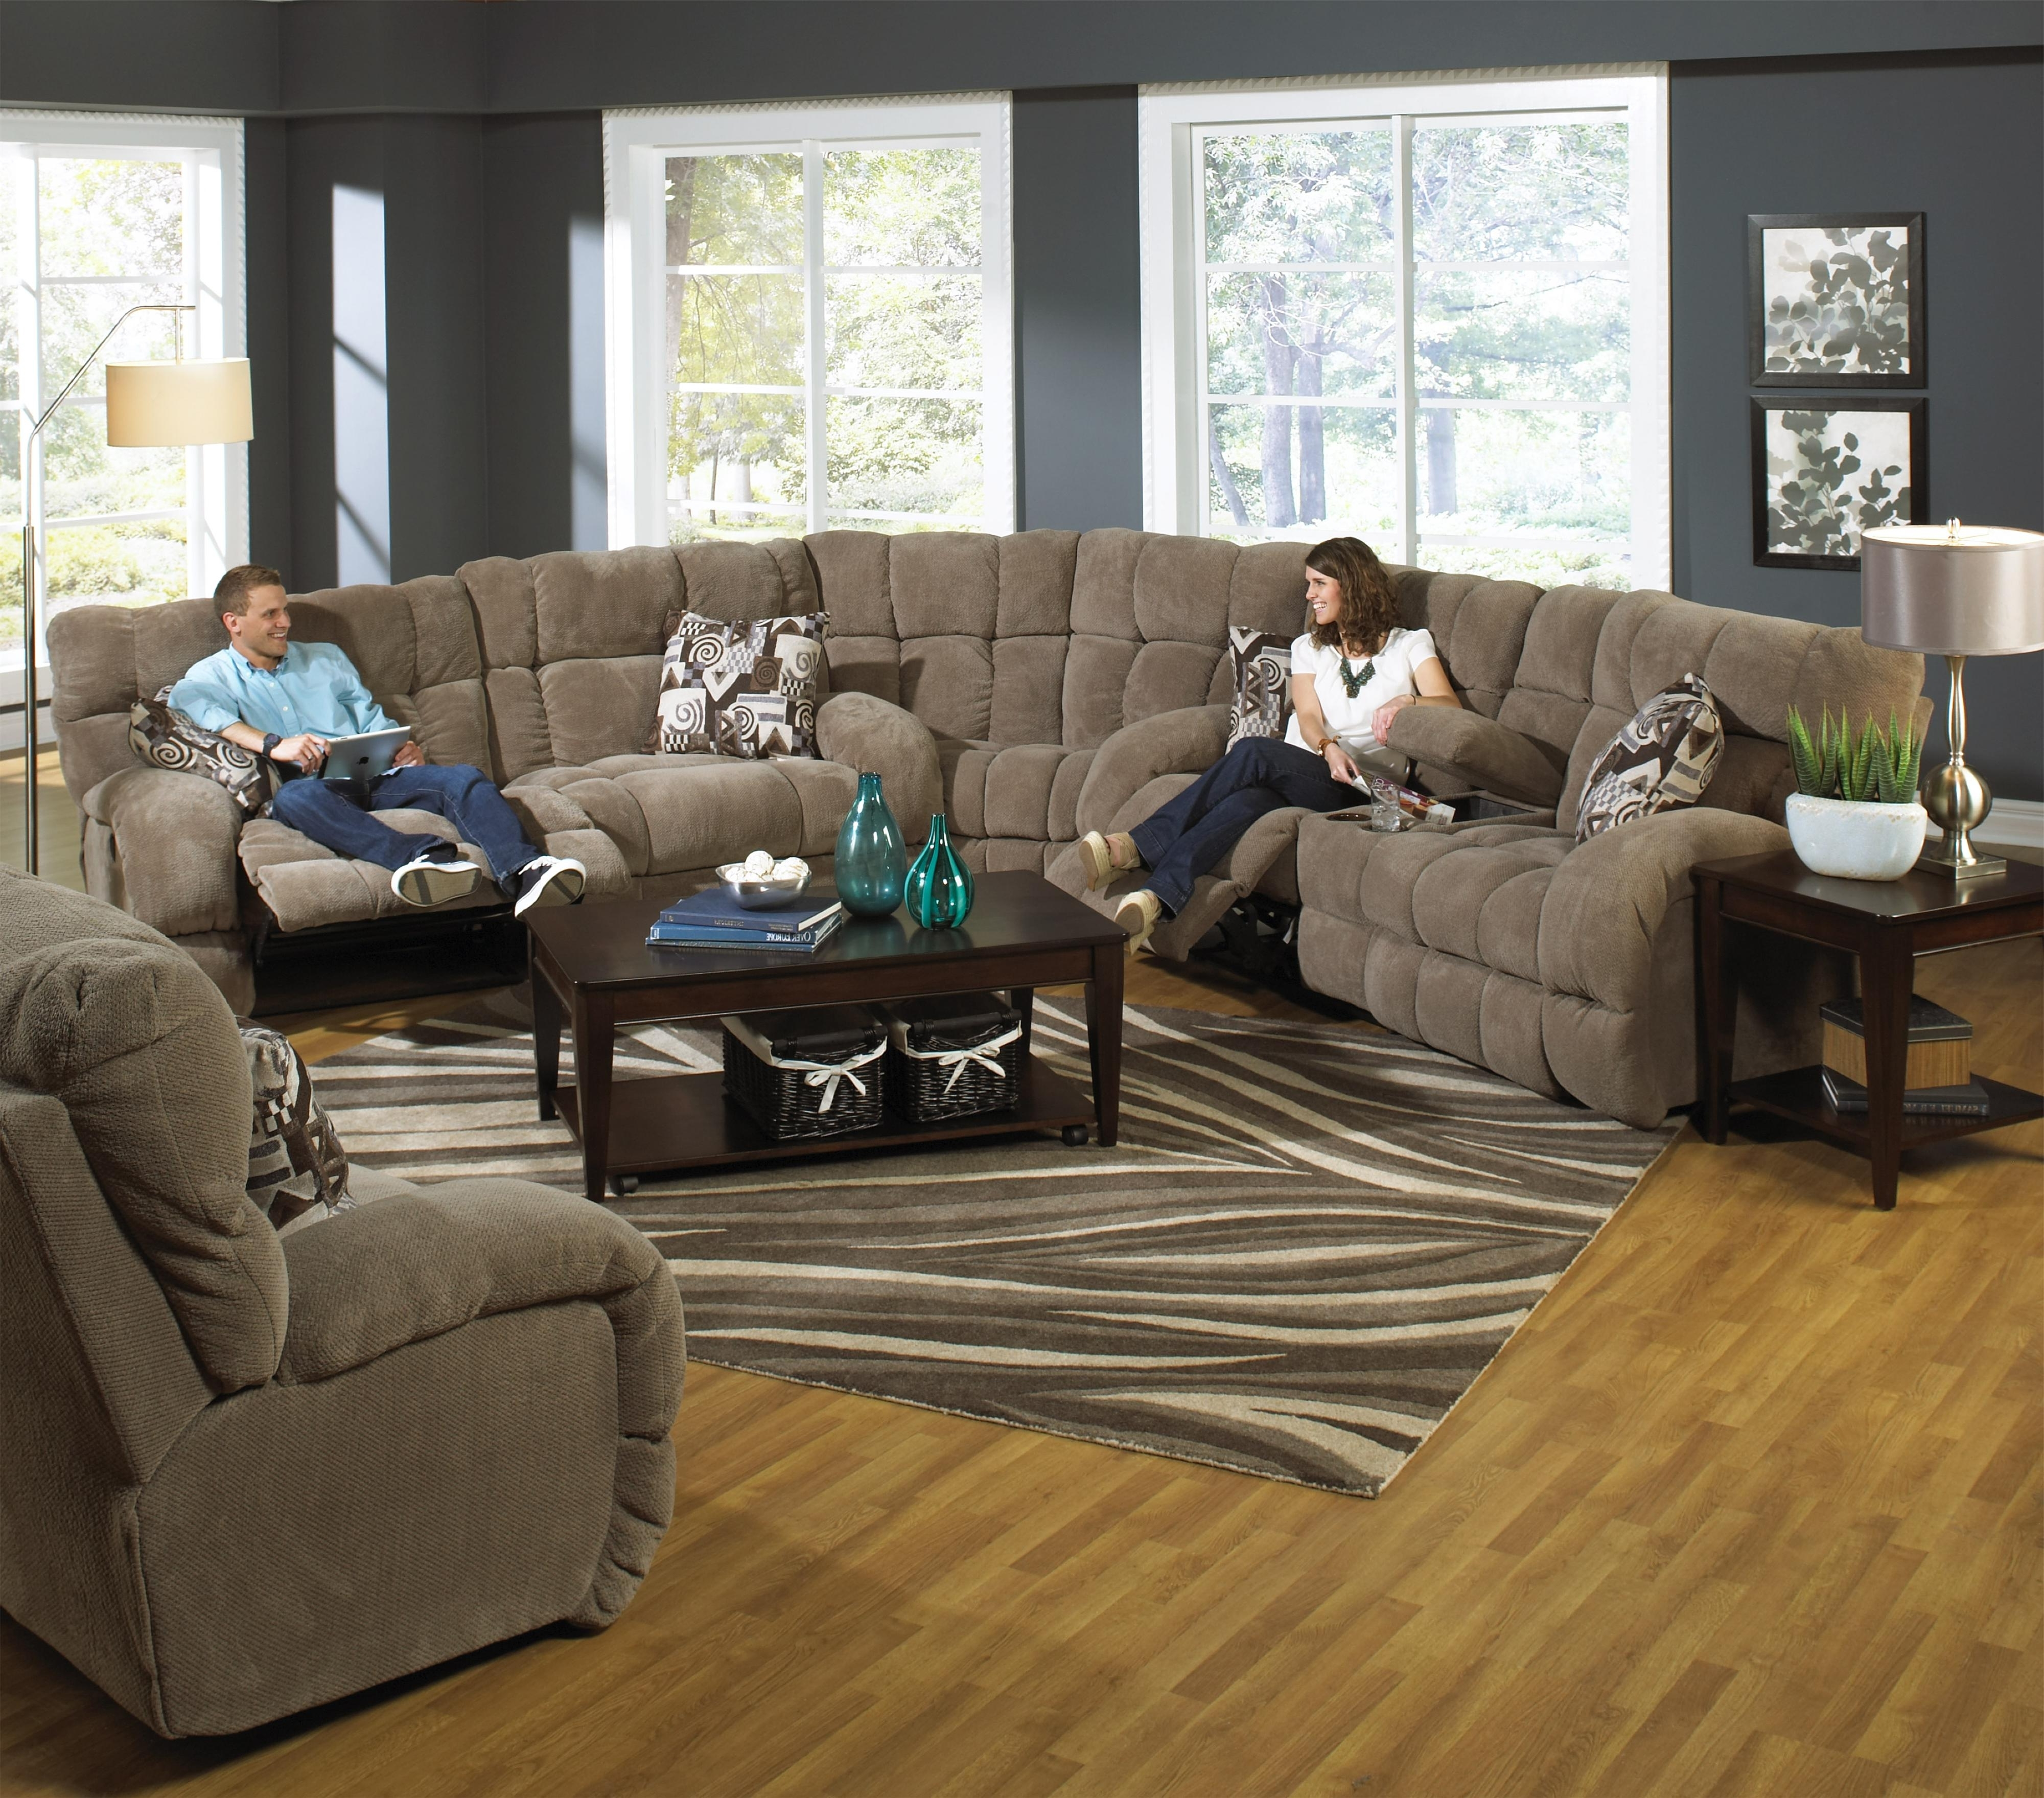 2018 Sectional Sofas With Power Recliners With Regard To Catnapper Siesta Power Reclining Sectional Sofa With Cup Holders (View 8 of 15)